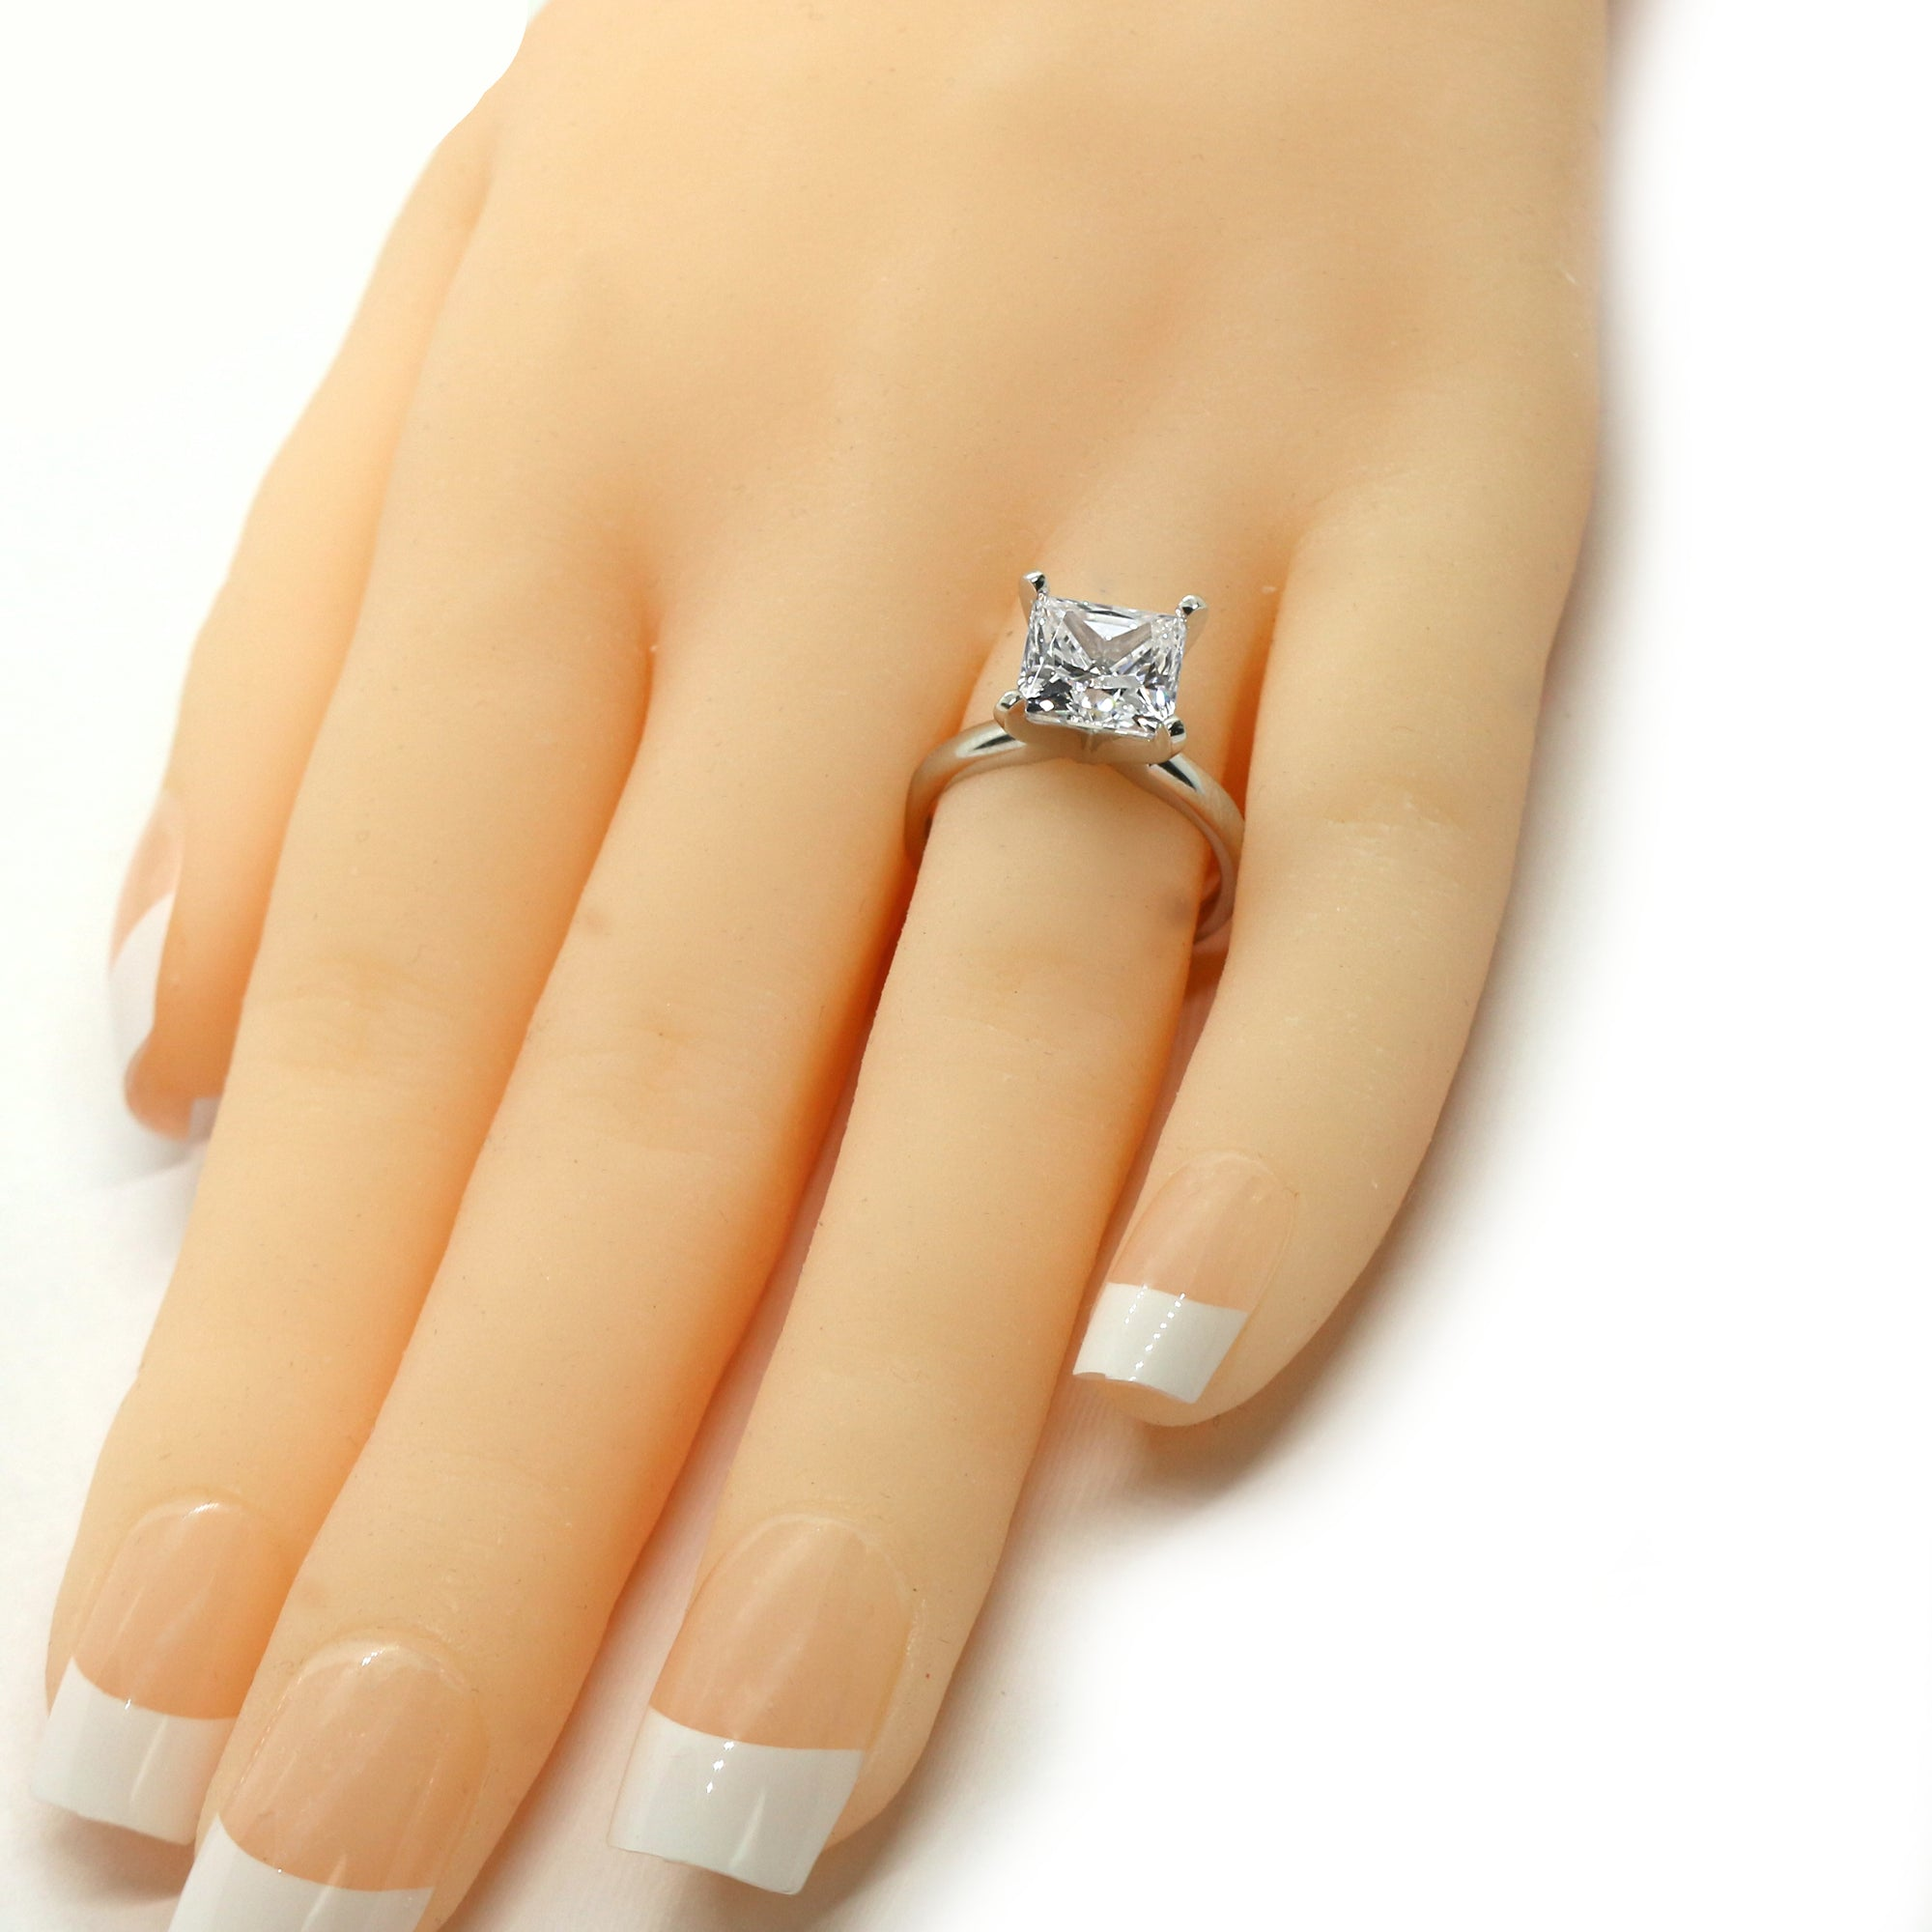 2.5Ct Princess-Cut Diamond Solitaire Engagement Ring 14k White Gold Over